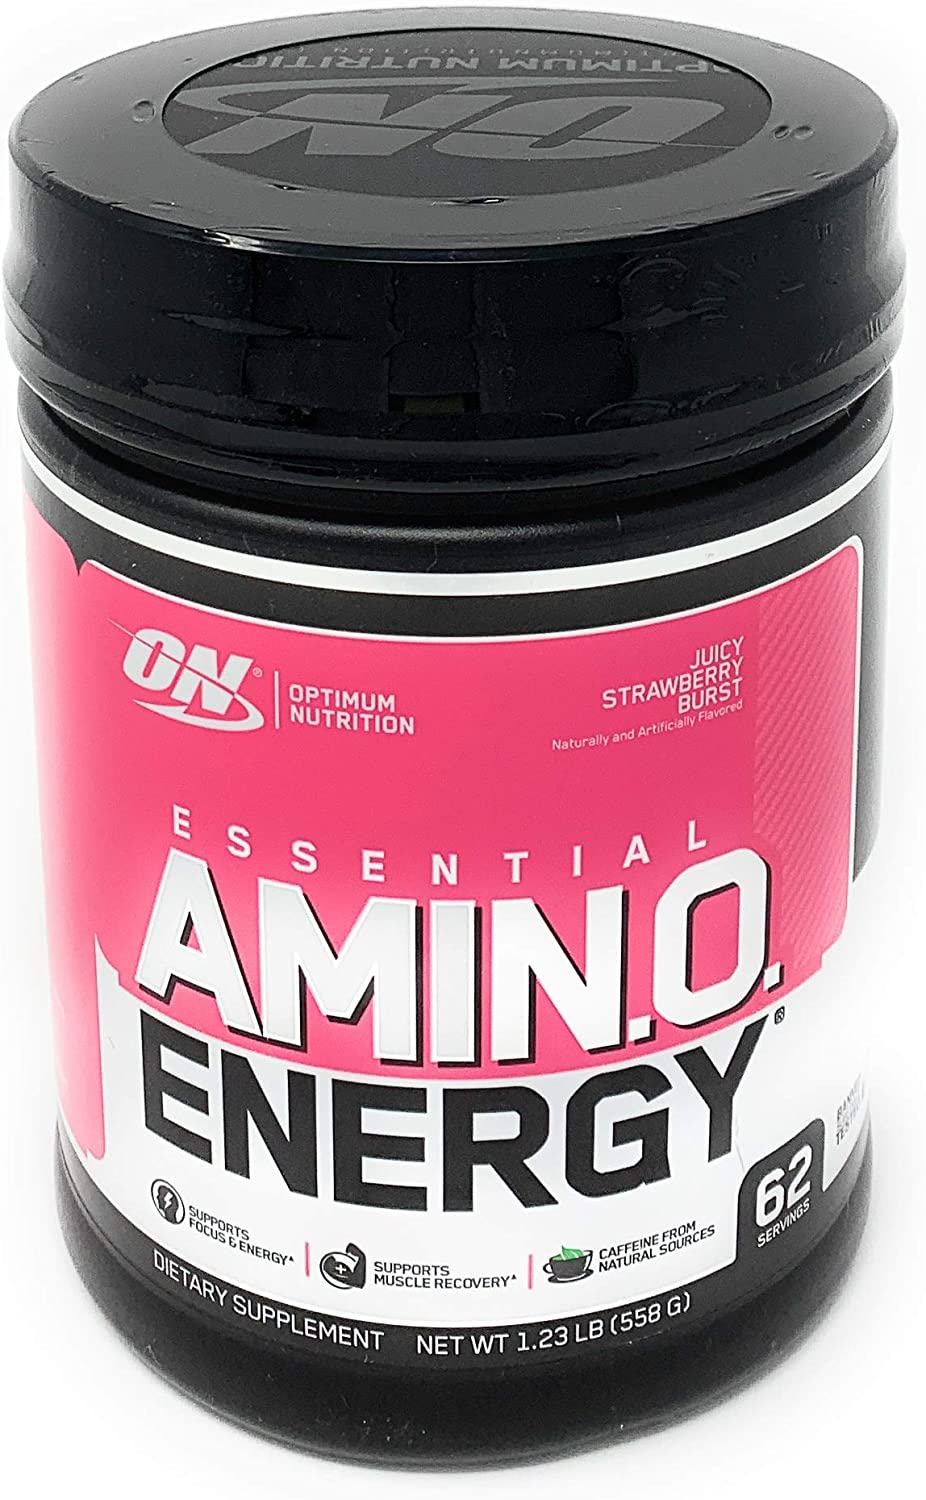 Optimum Nutrition Essential Amino Energy, Juicy Strawberry Burst, Preworkout and Postworkout Recovery with Essential Amino Acids and Caffeine from Natural Sources, 62 Servings, 1.23 lb, Pack of 1